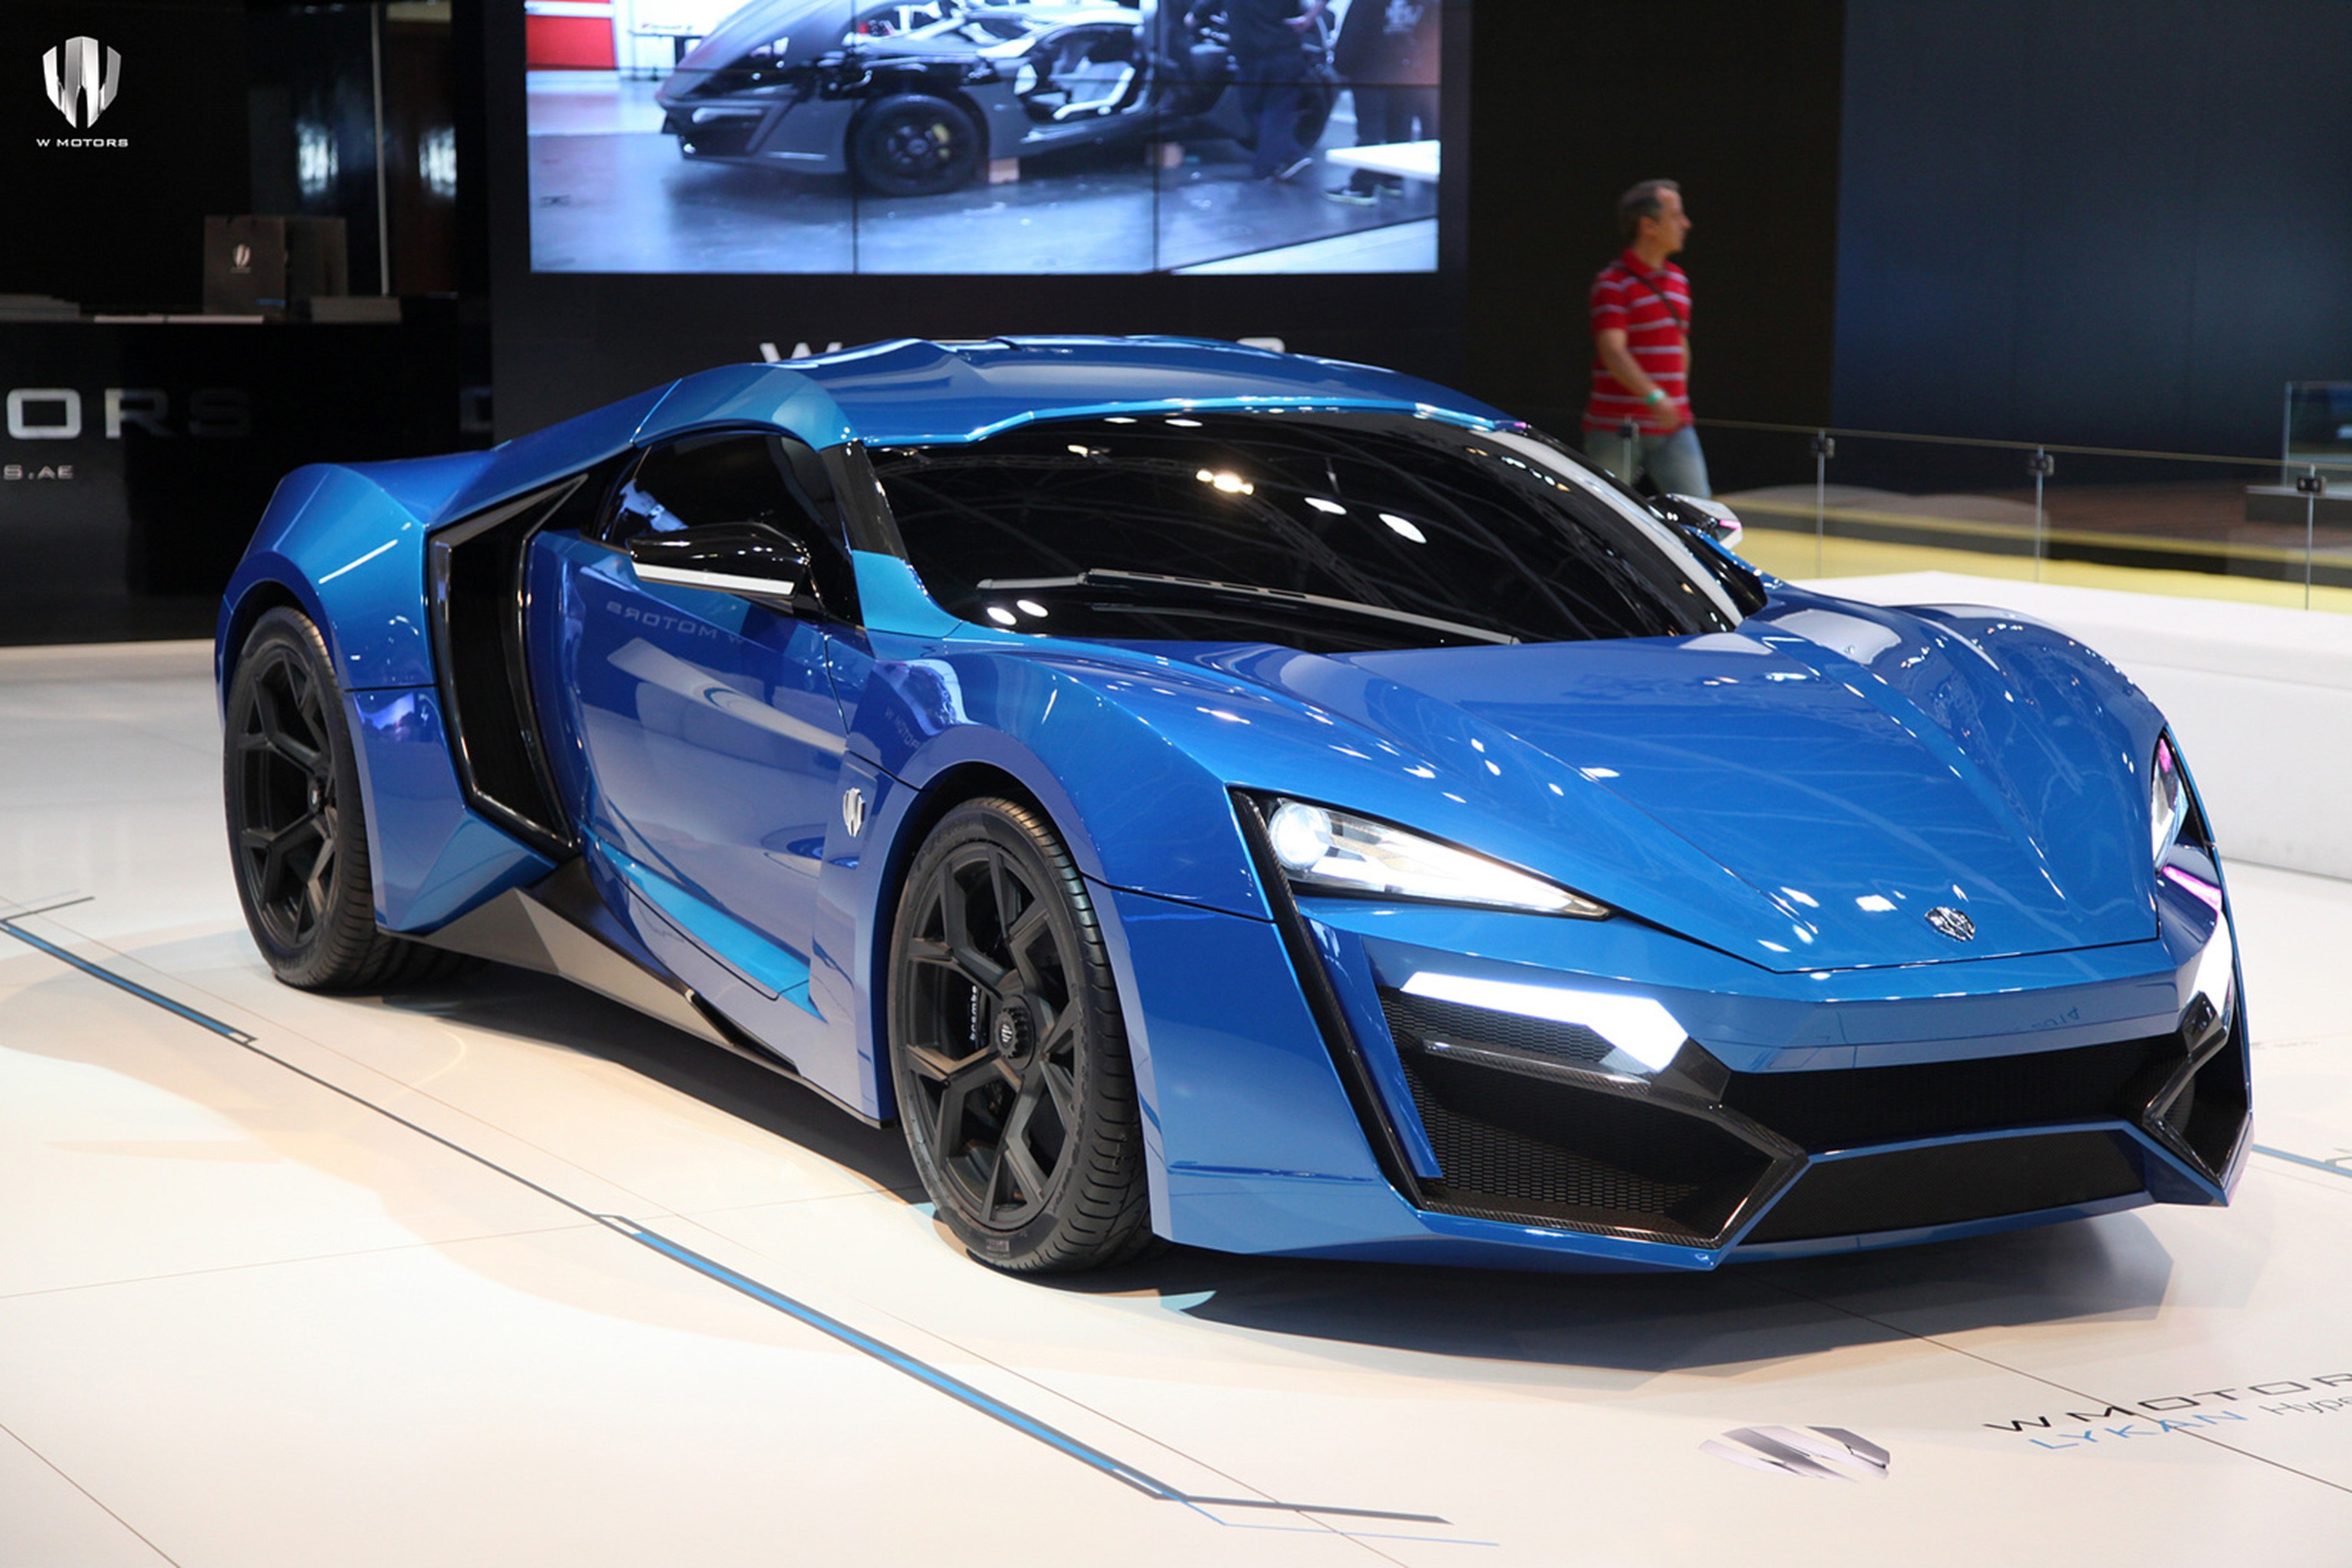 New New Hyper Cars Release, Reviews and Models on newcarrelease.biz